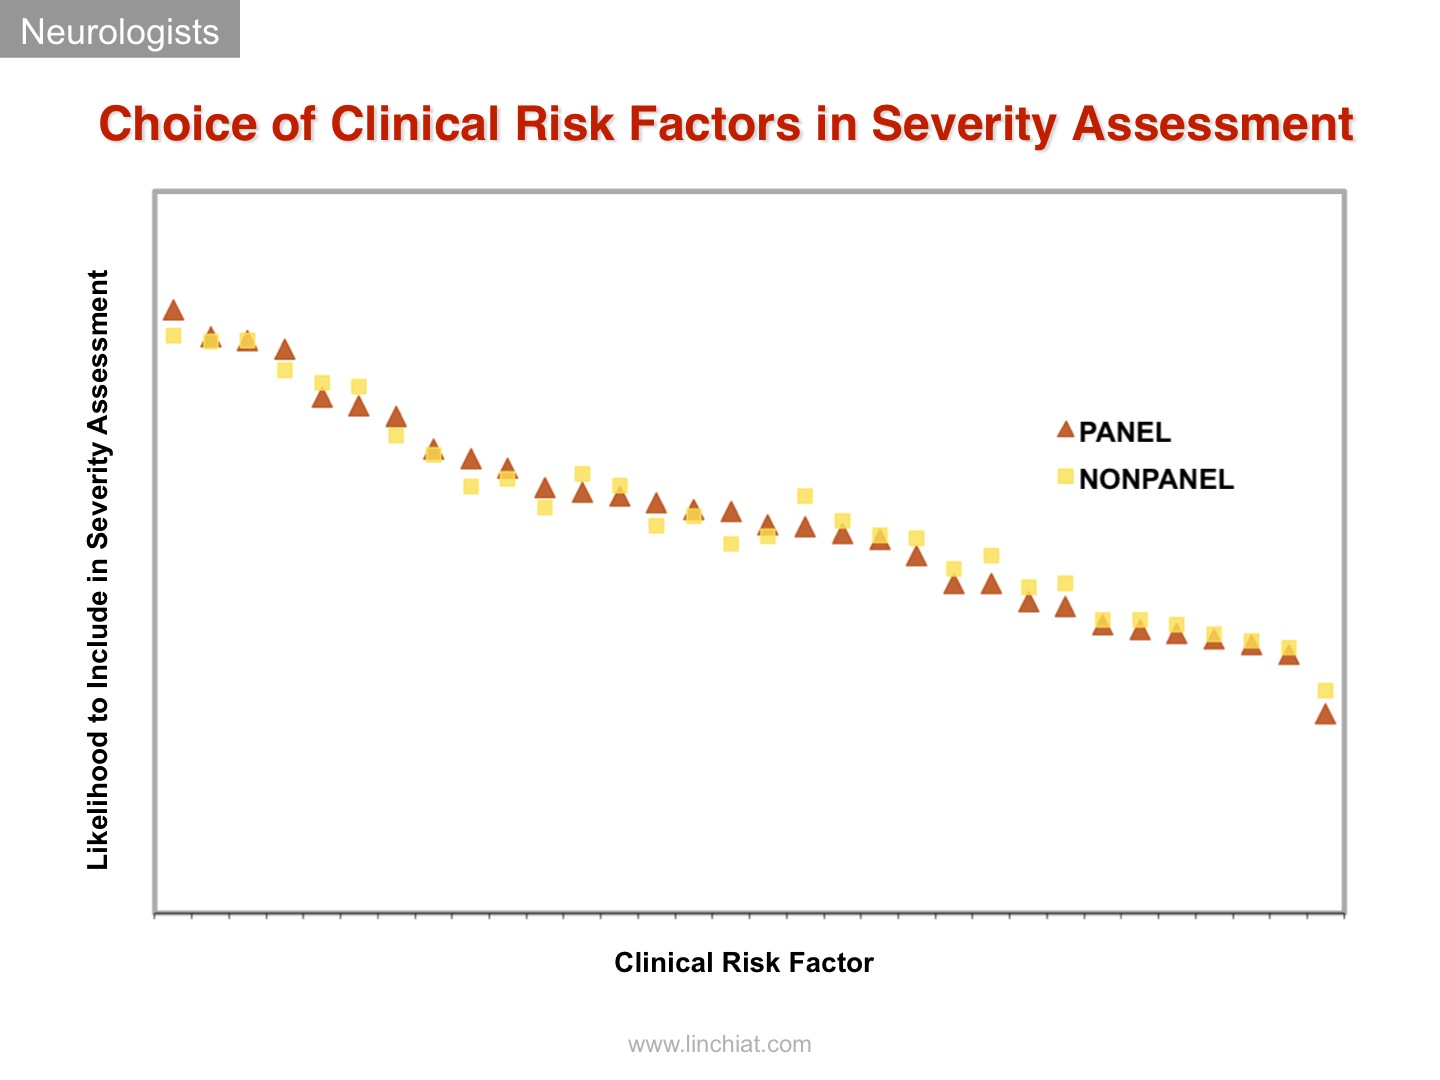 risk factors assessment.jpg